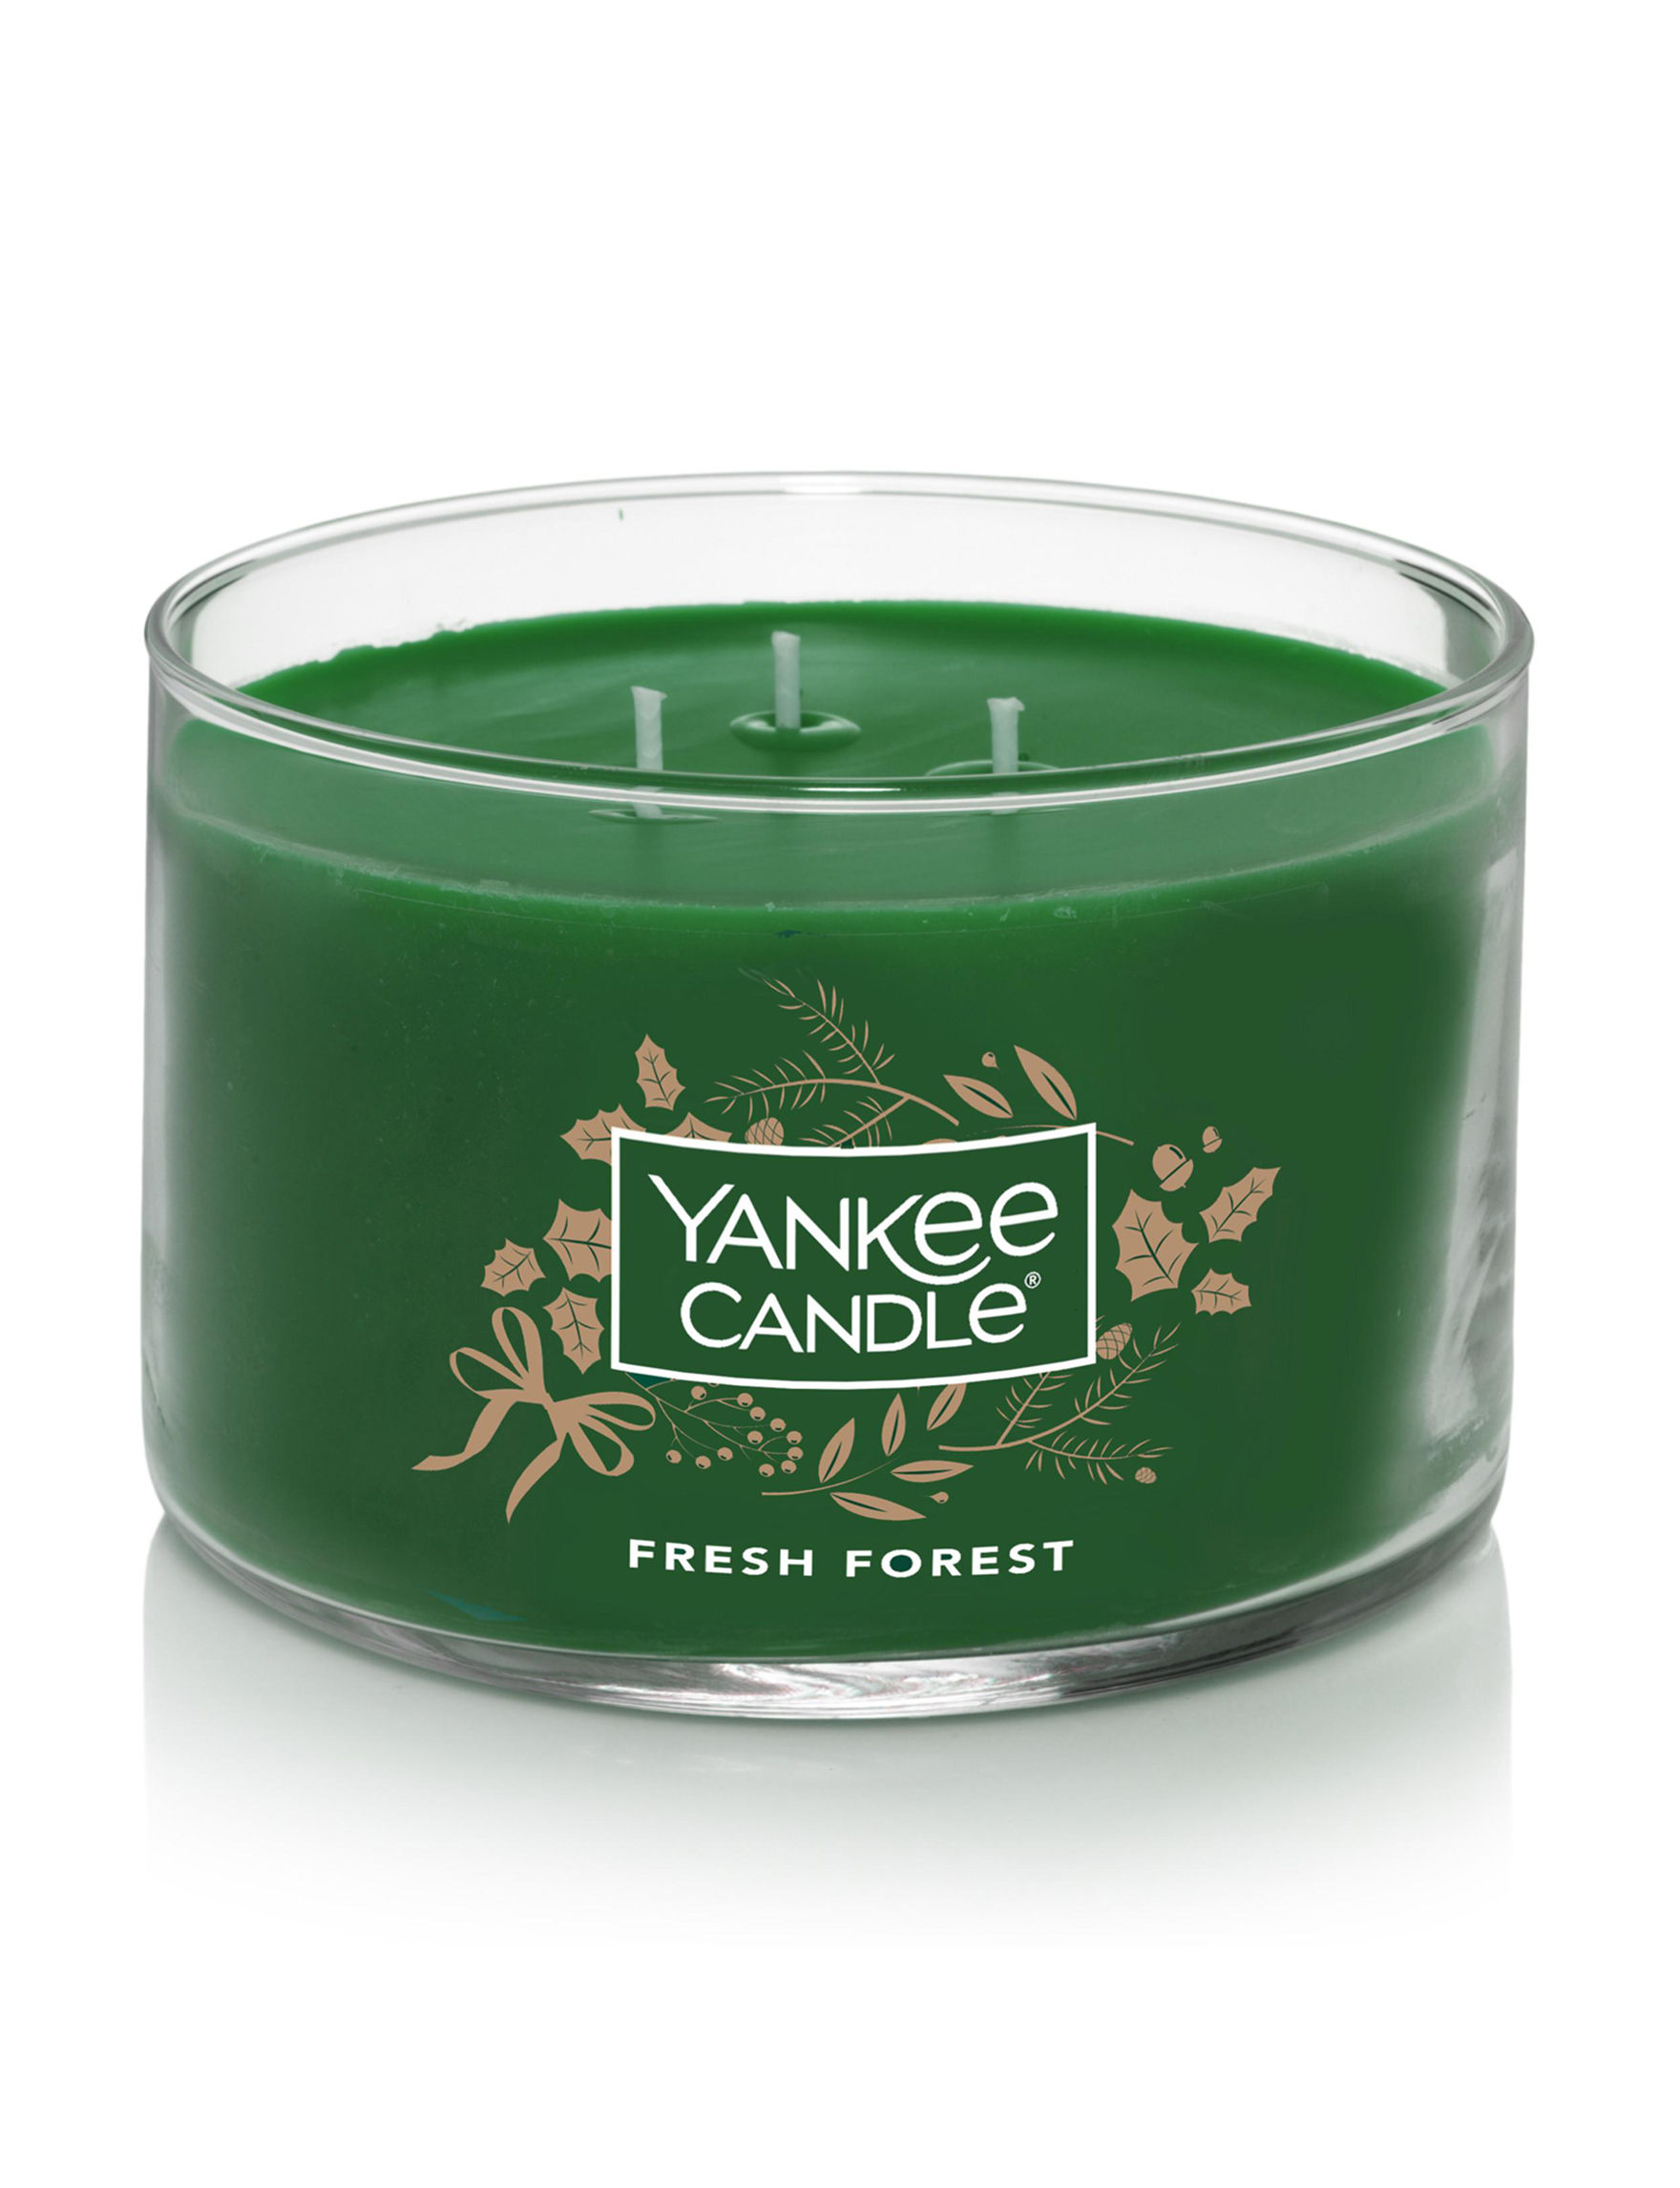 Yankee Candle Green Candles Candles & Diffusers